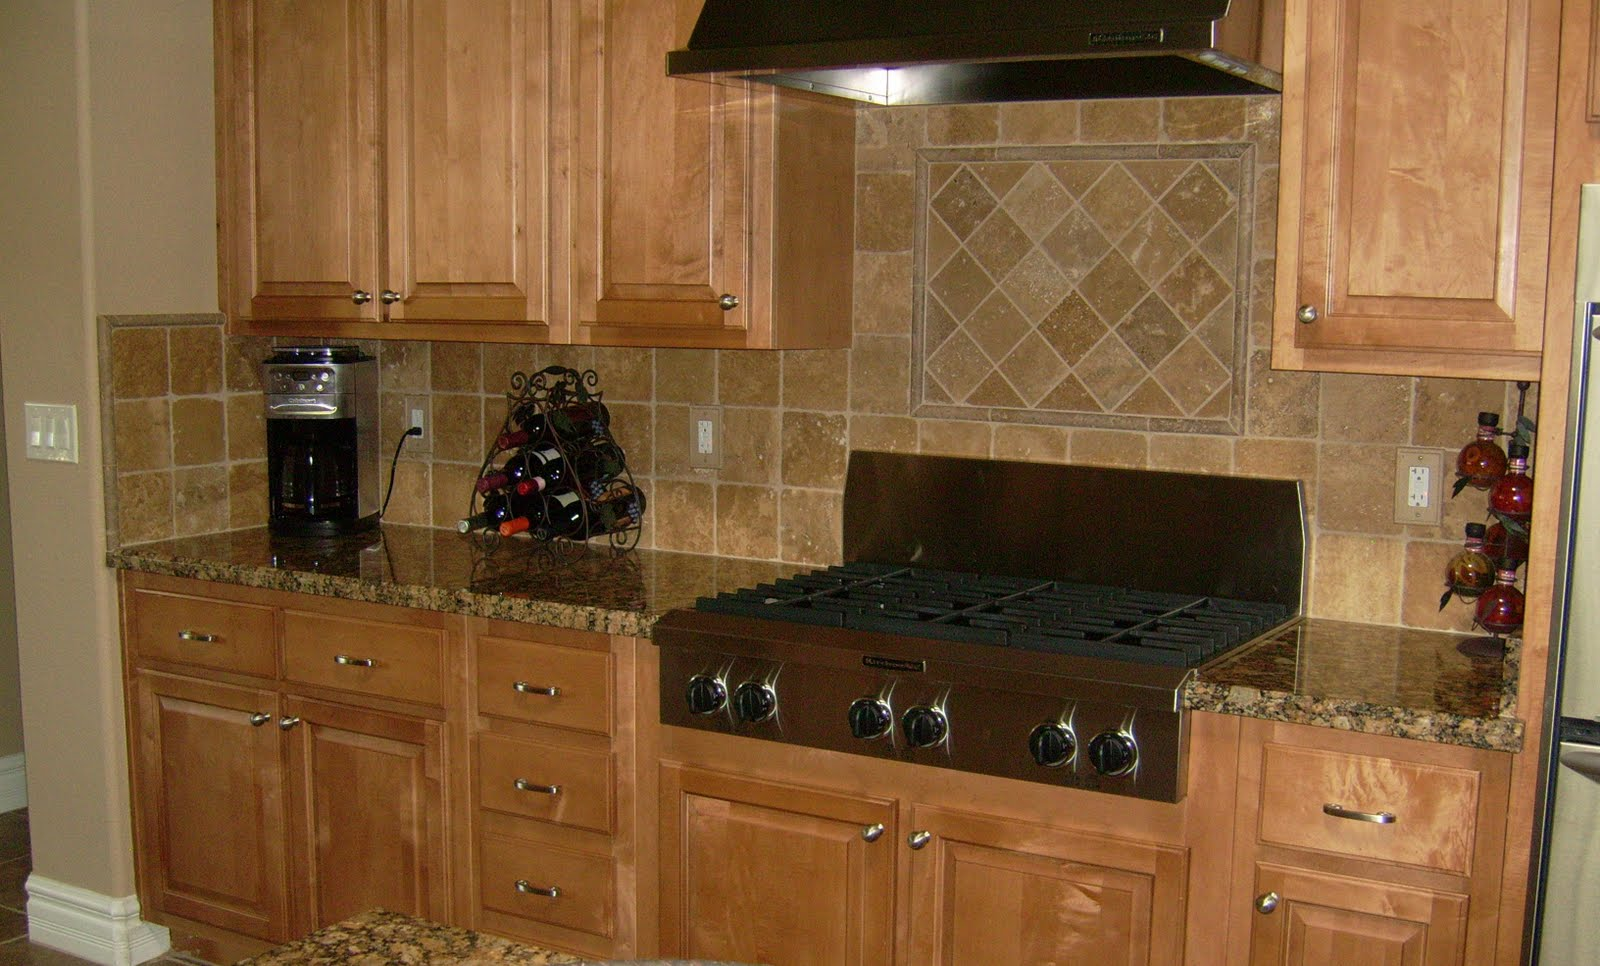 kitchens design on Pictures Kitchen Backsplash Ideas 6x6 Tumbled Stone Kitchen Backsplash ...